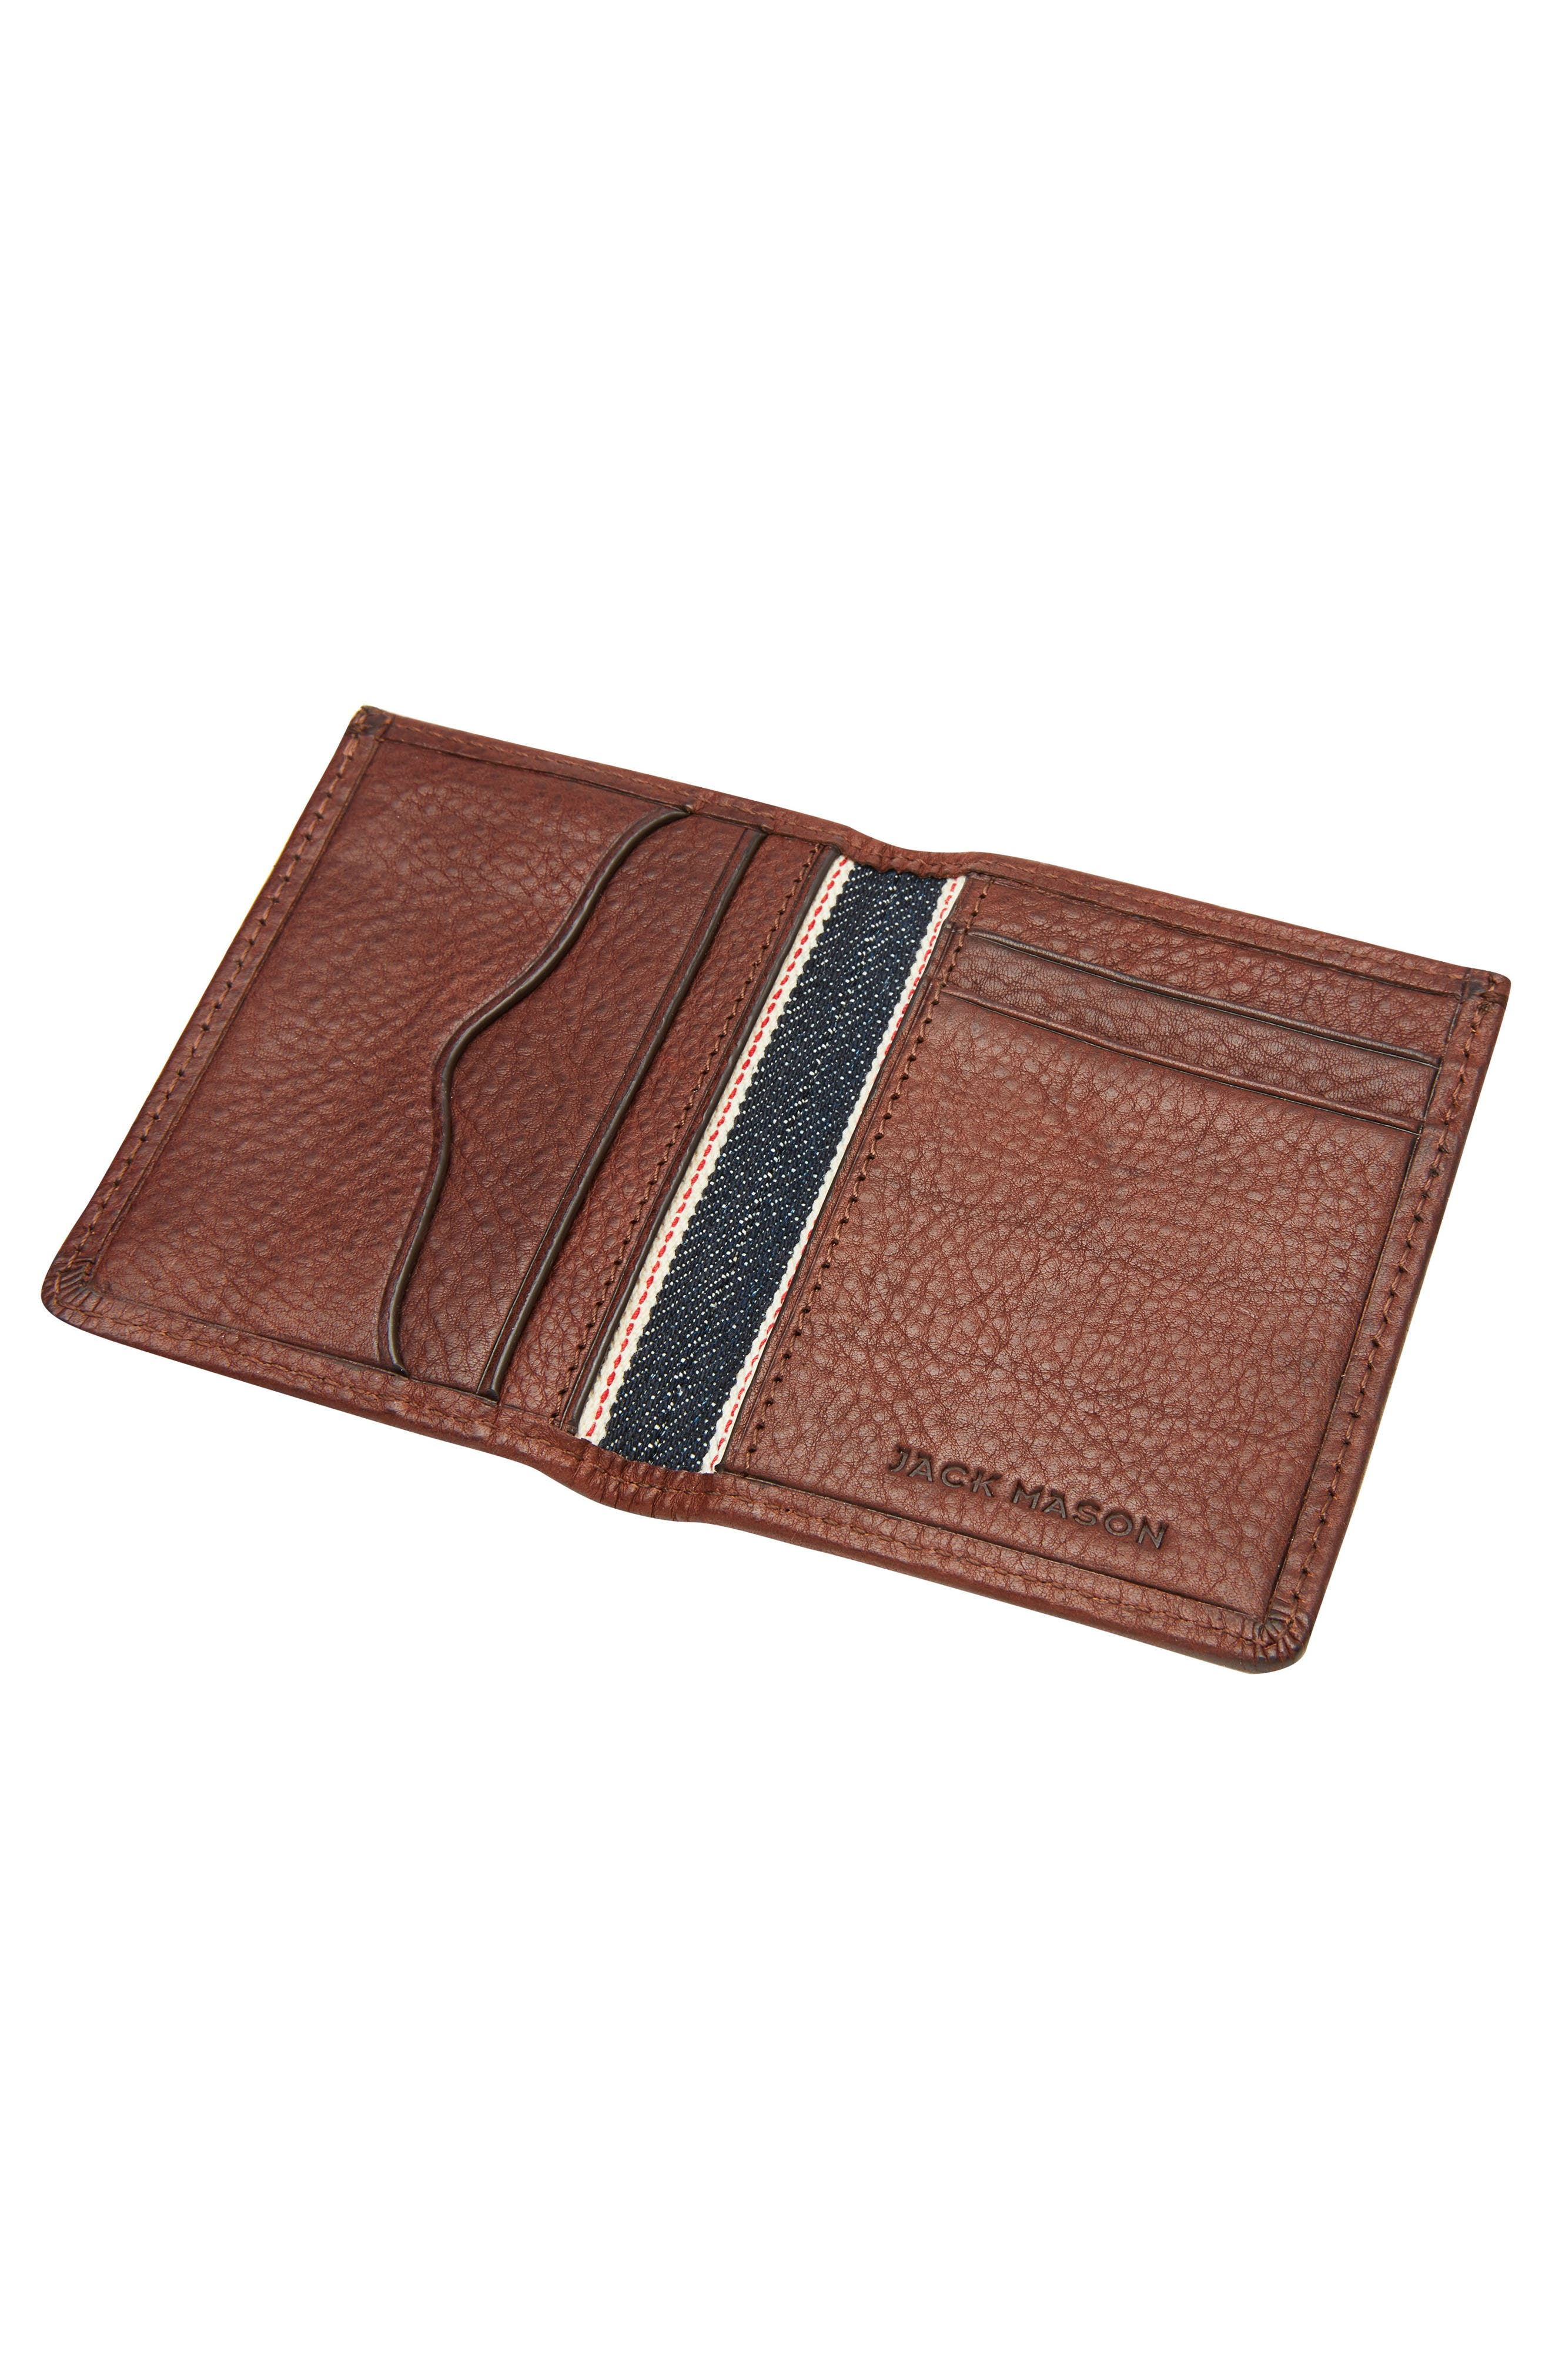 Leather with Selvedge Denim Card Case,                             Alternate thumbnail 2, color,                             200